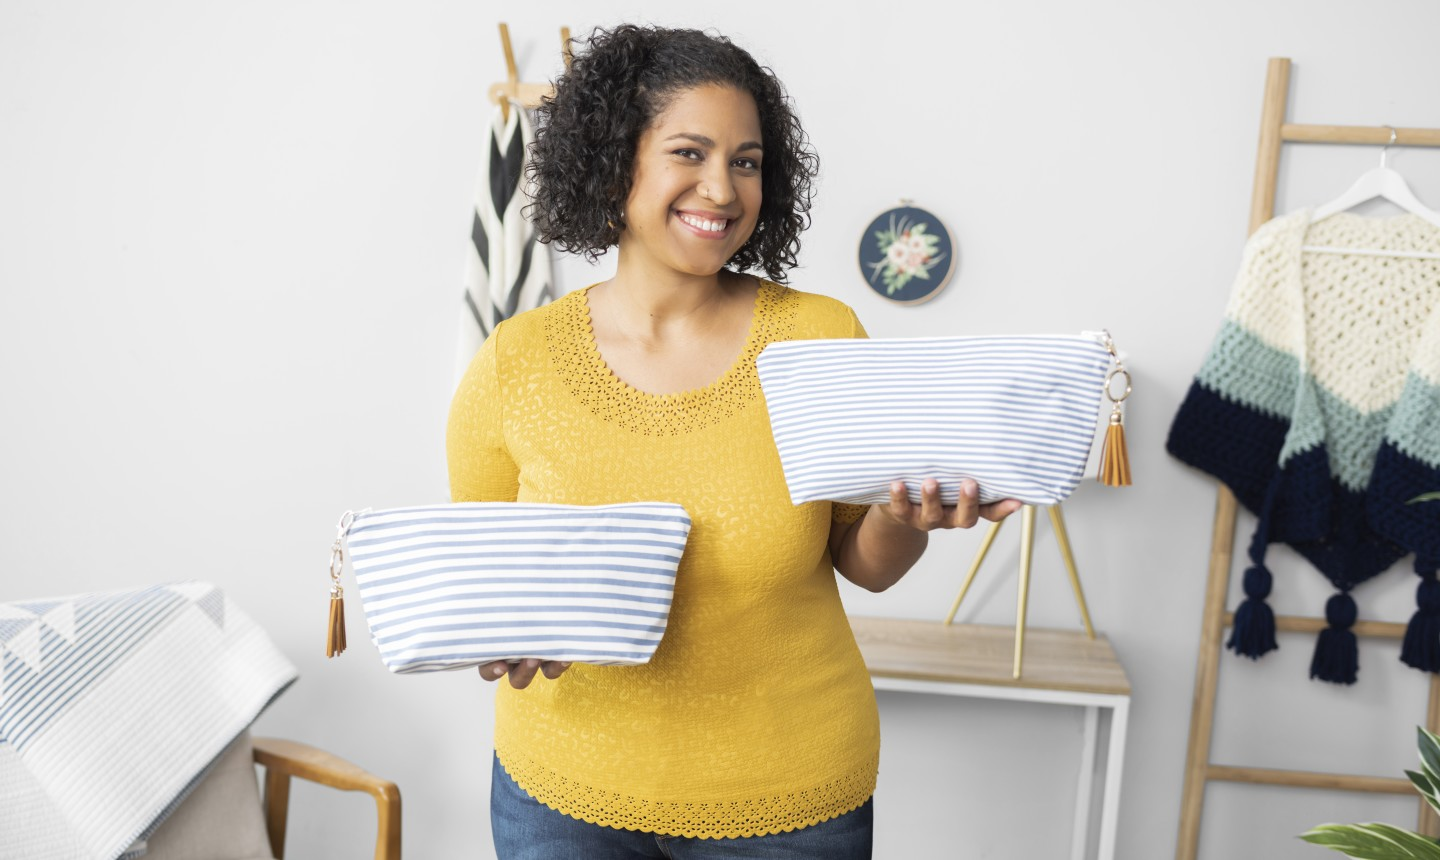 Woman holding two bags